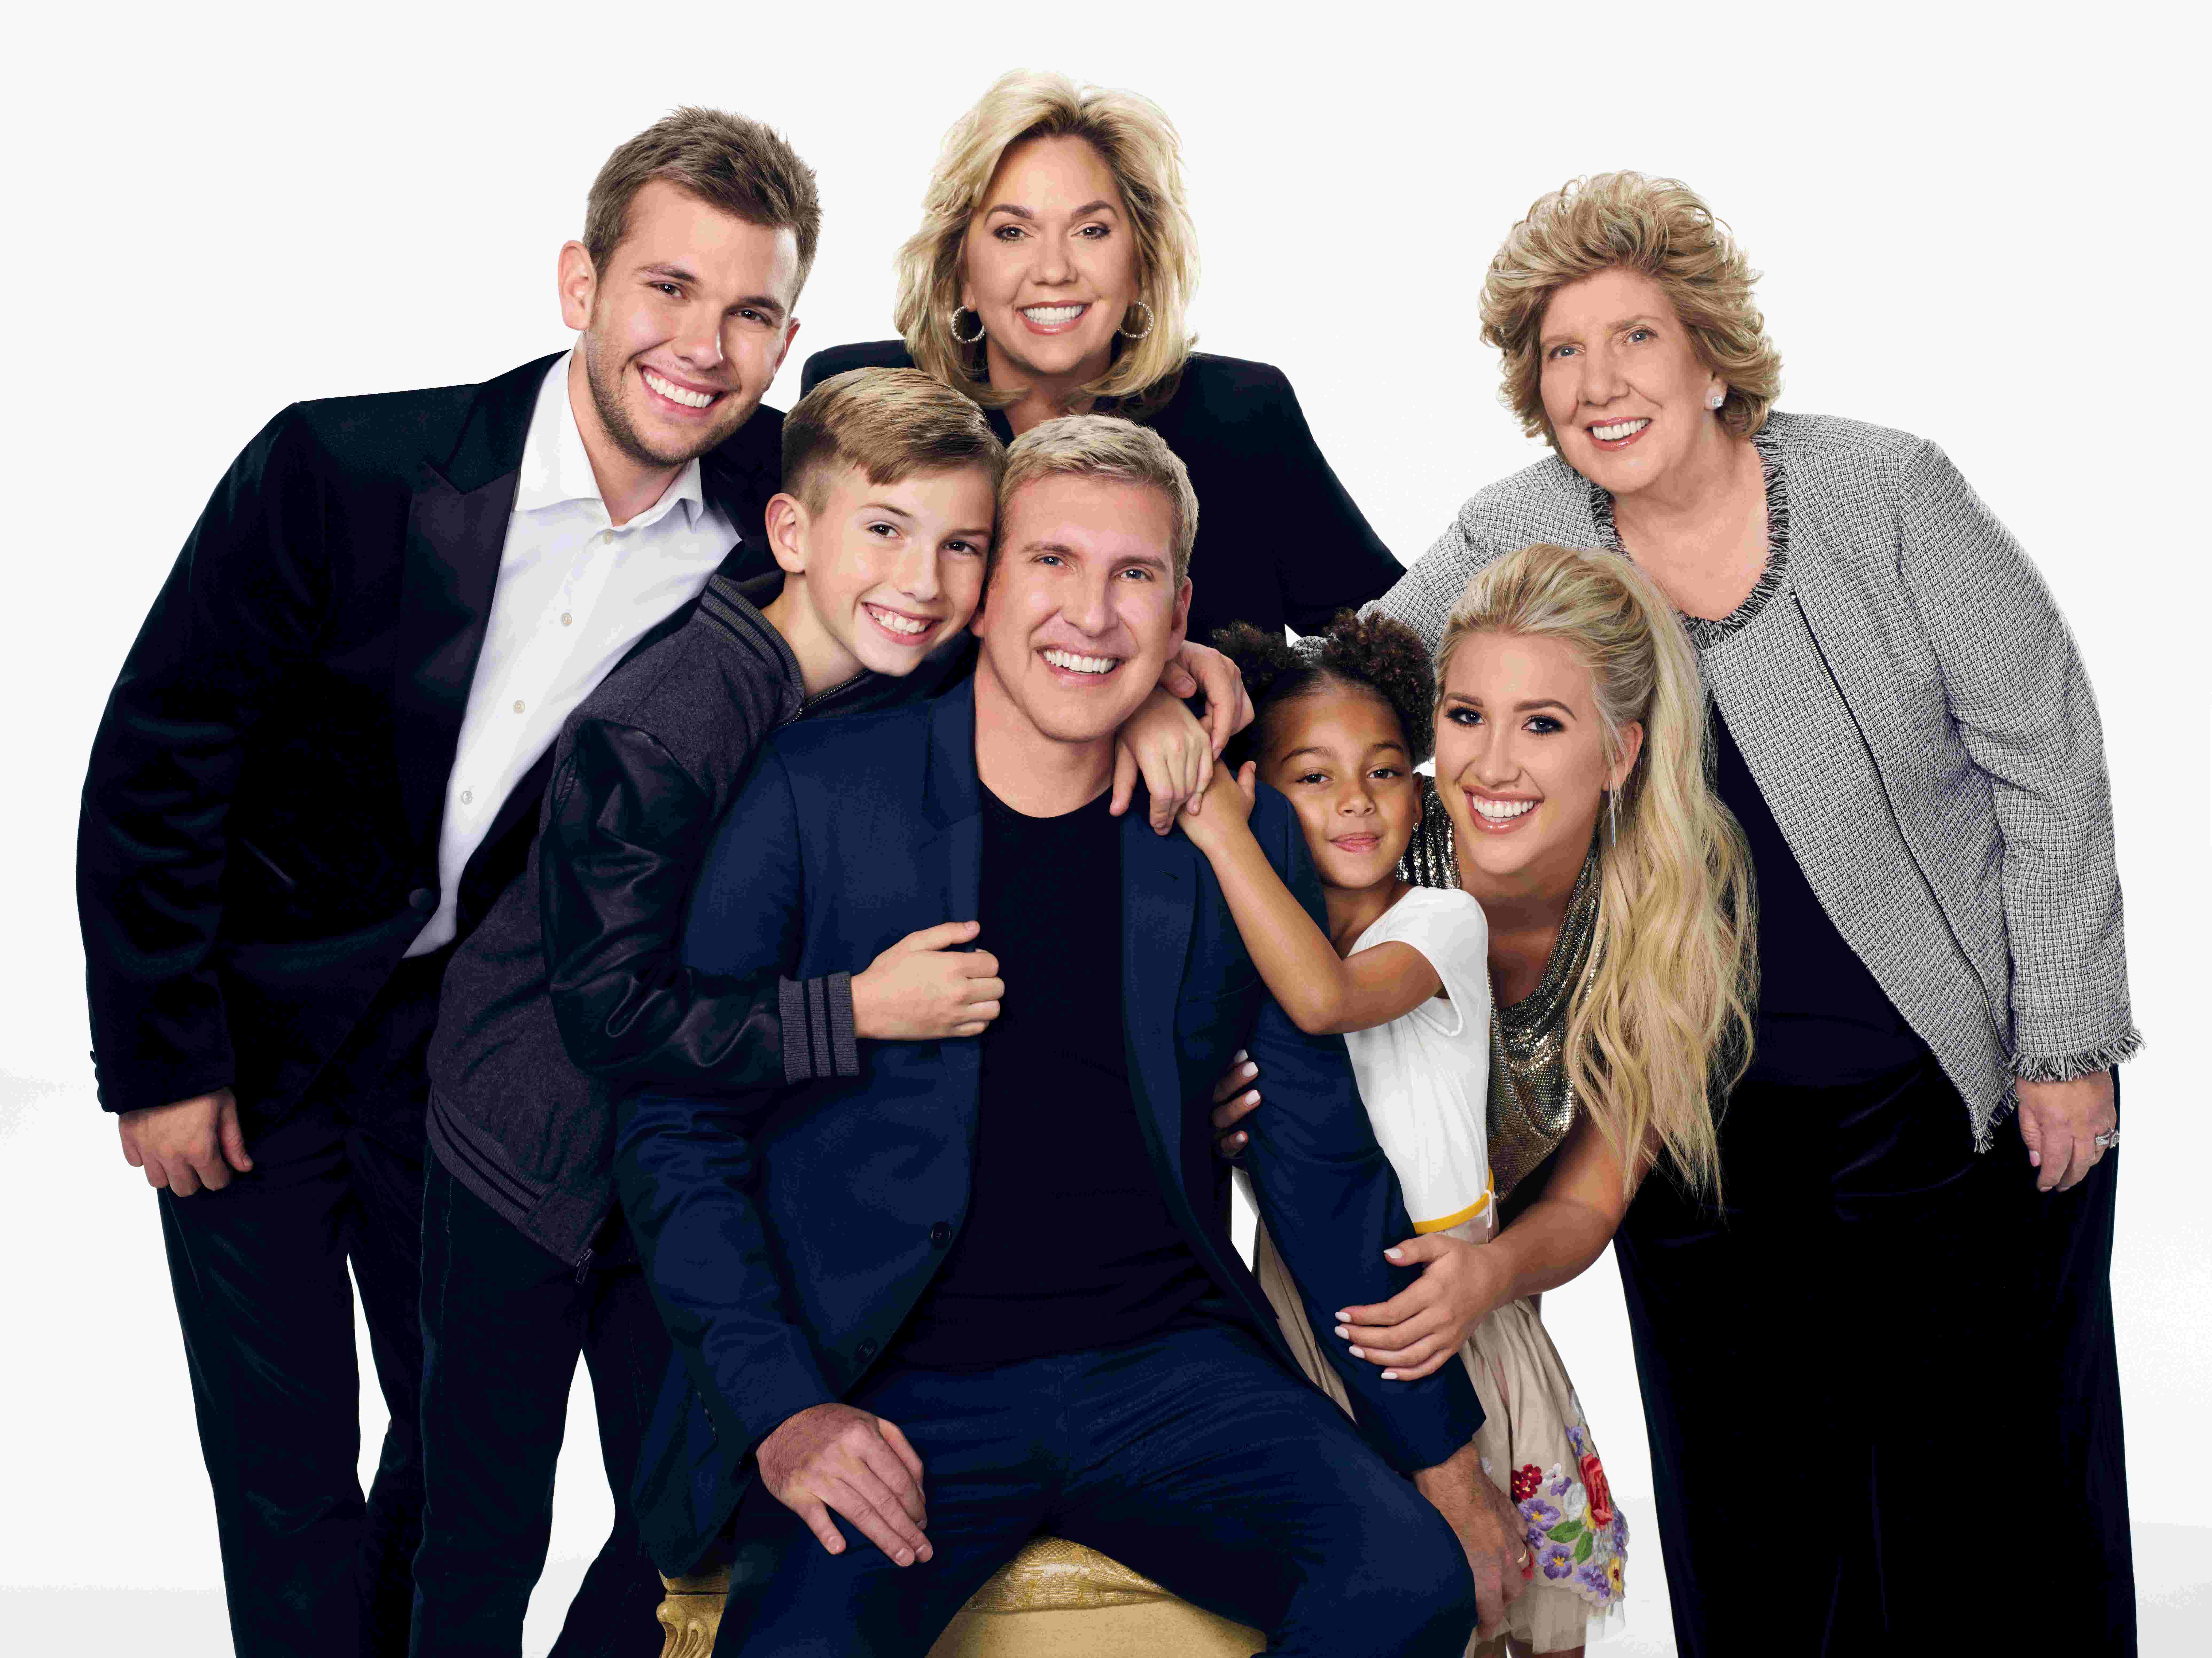 Todd and Julie Chrisley from 'Chrisley Knows Best' talk about granddaughter  Chloe